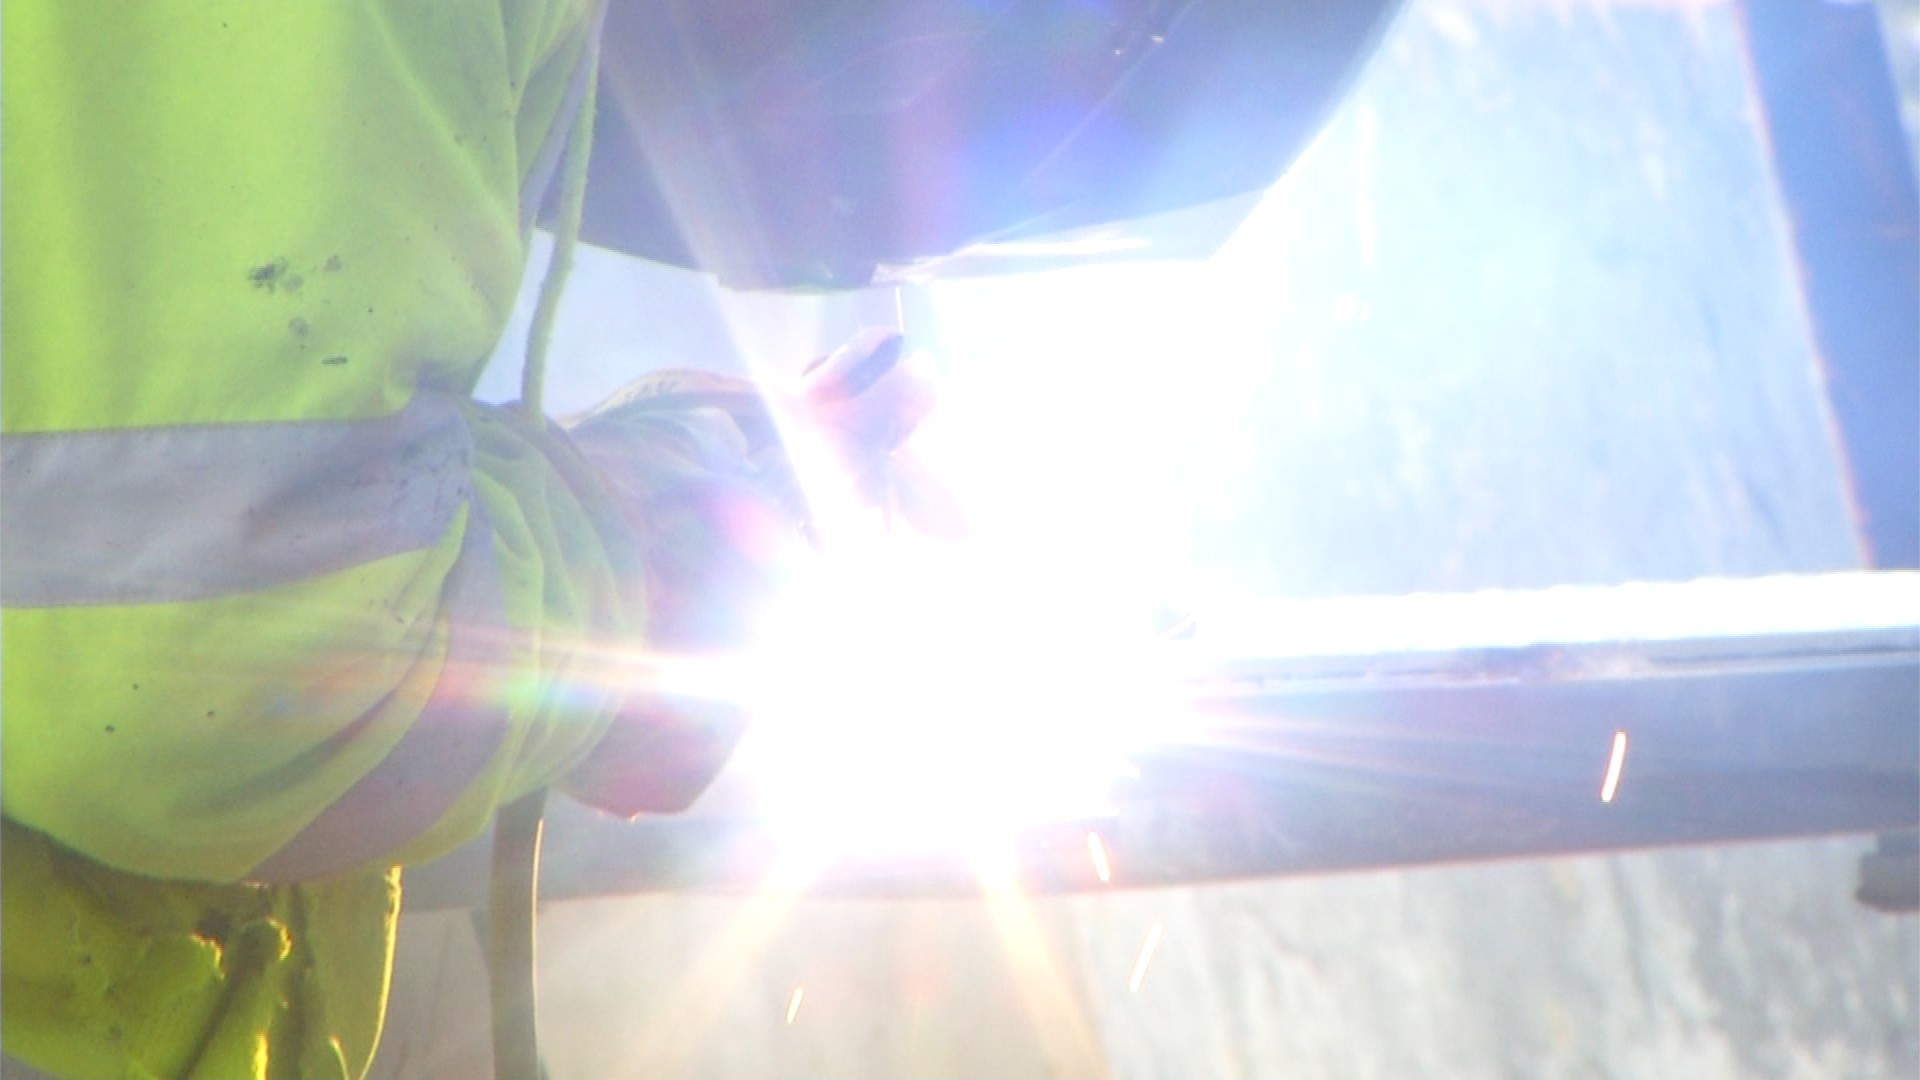 manufacturing production on the rise nationally and in northern